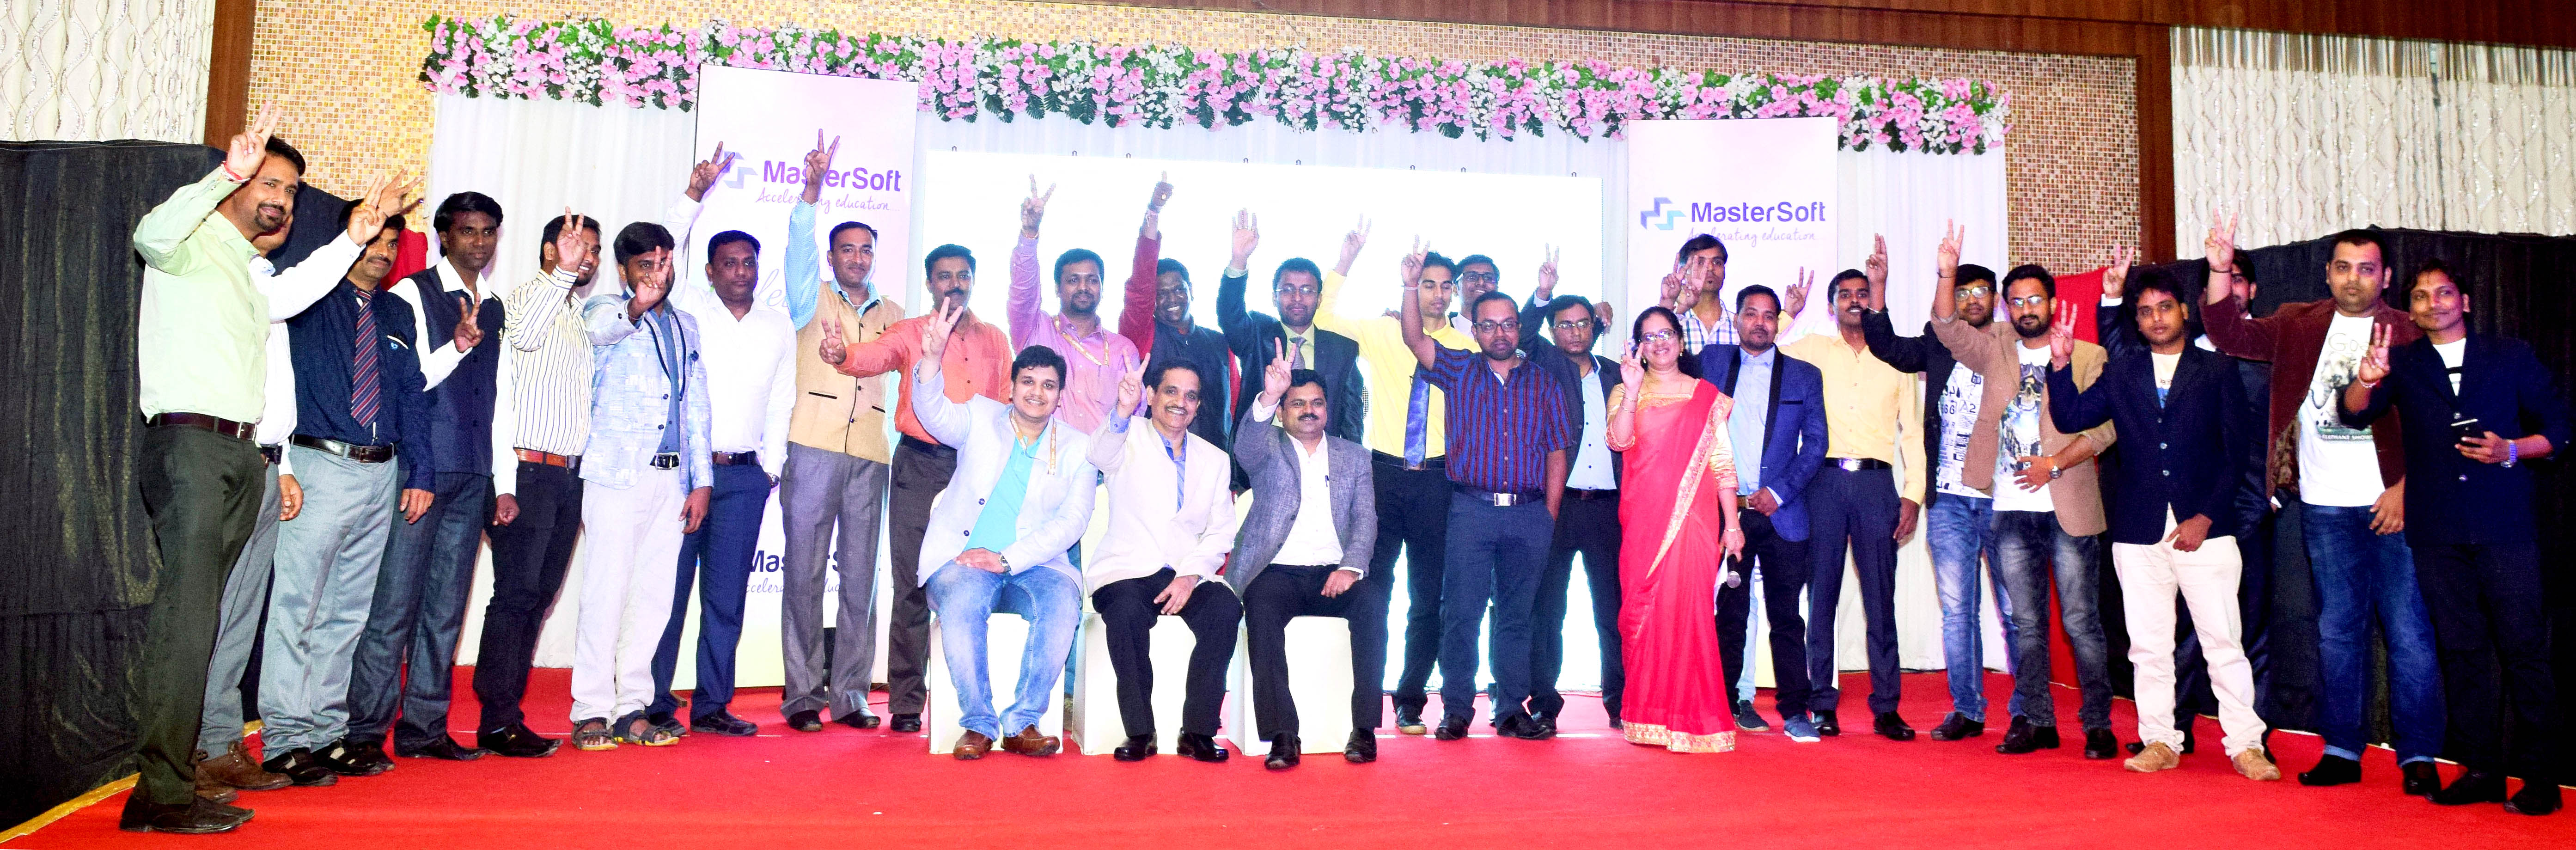 MasterSoft Team at Annual Gathering